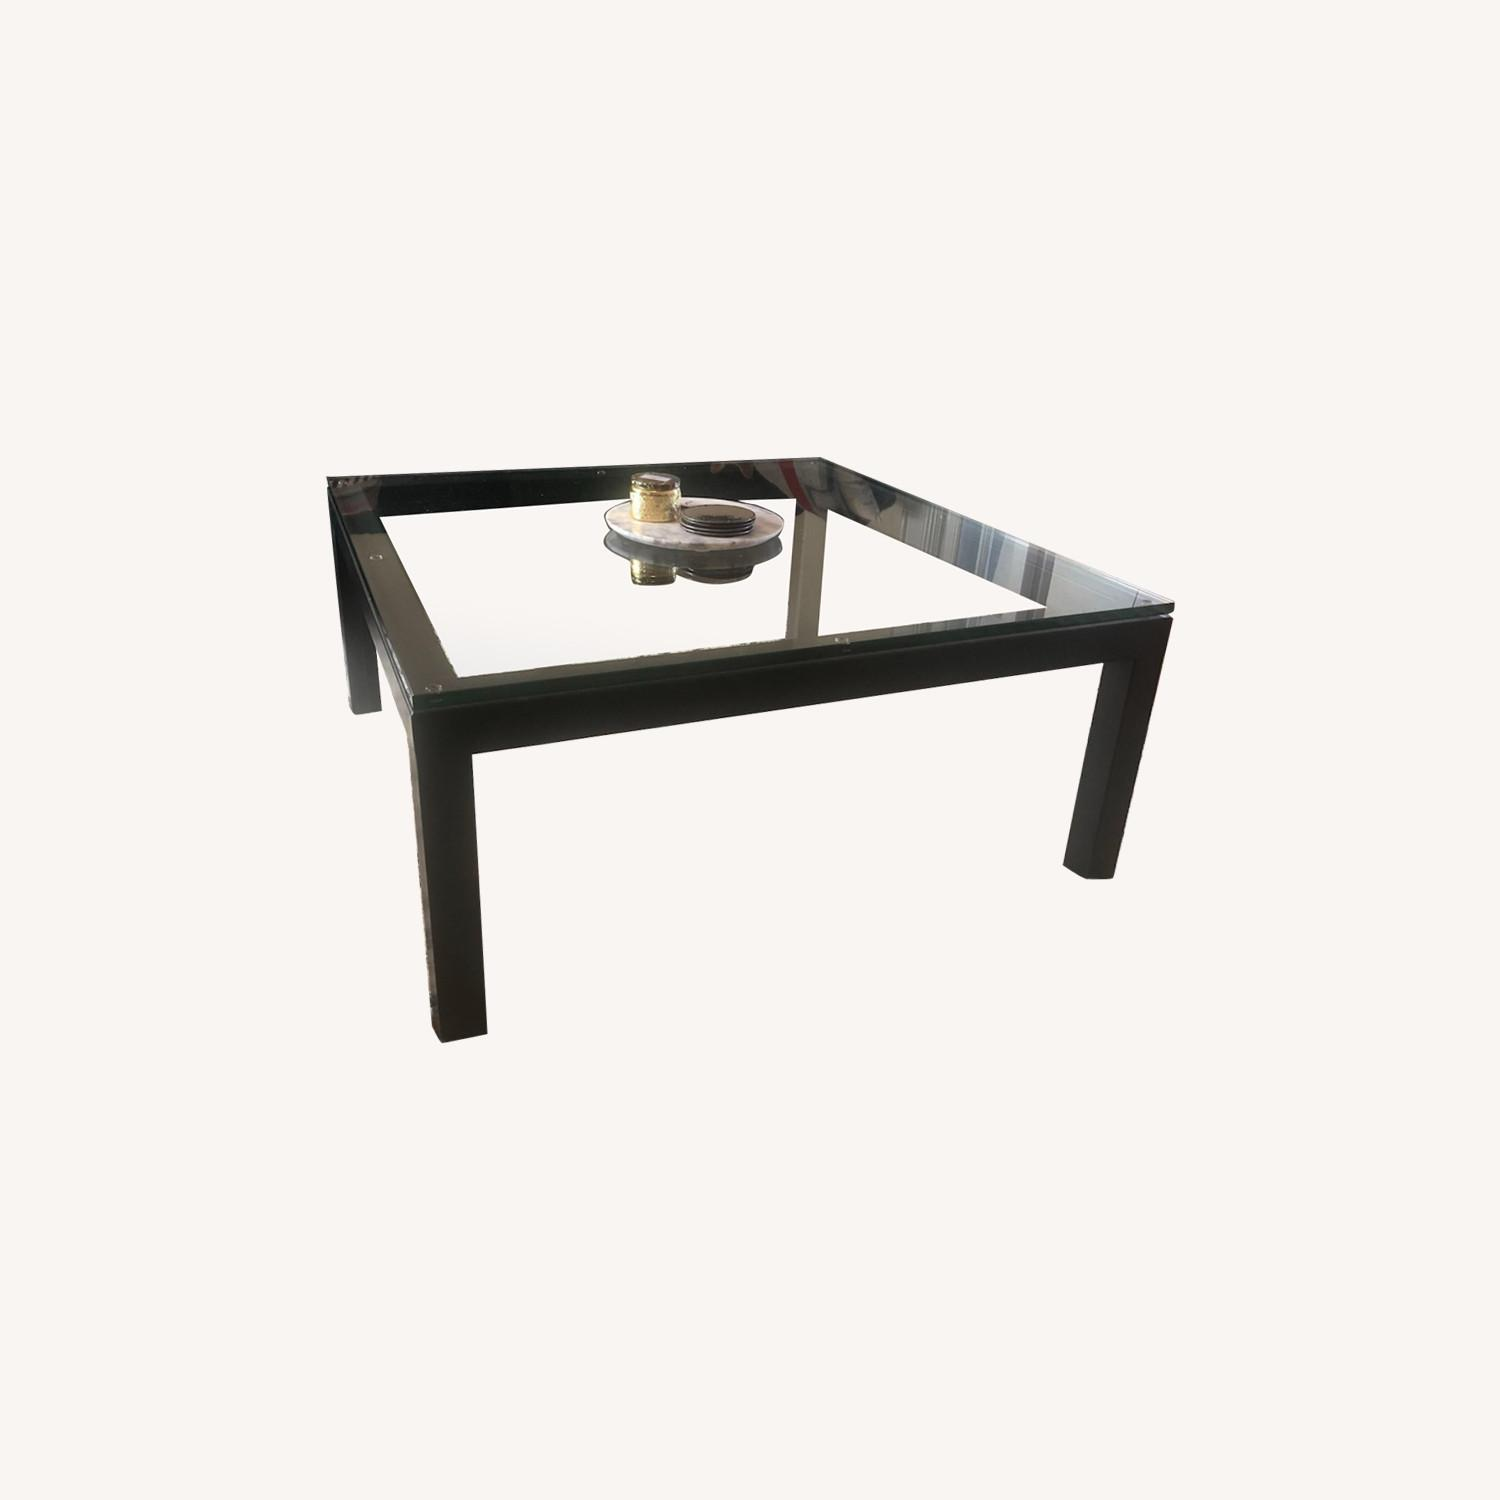 Crate & Barrel Sturdy & Elegant Glass Coffee Table - image-0